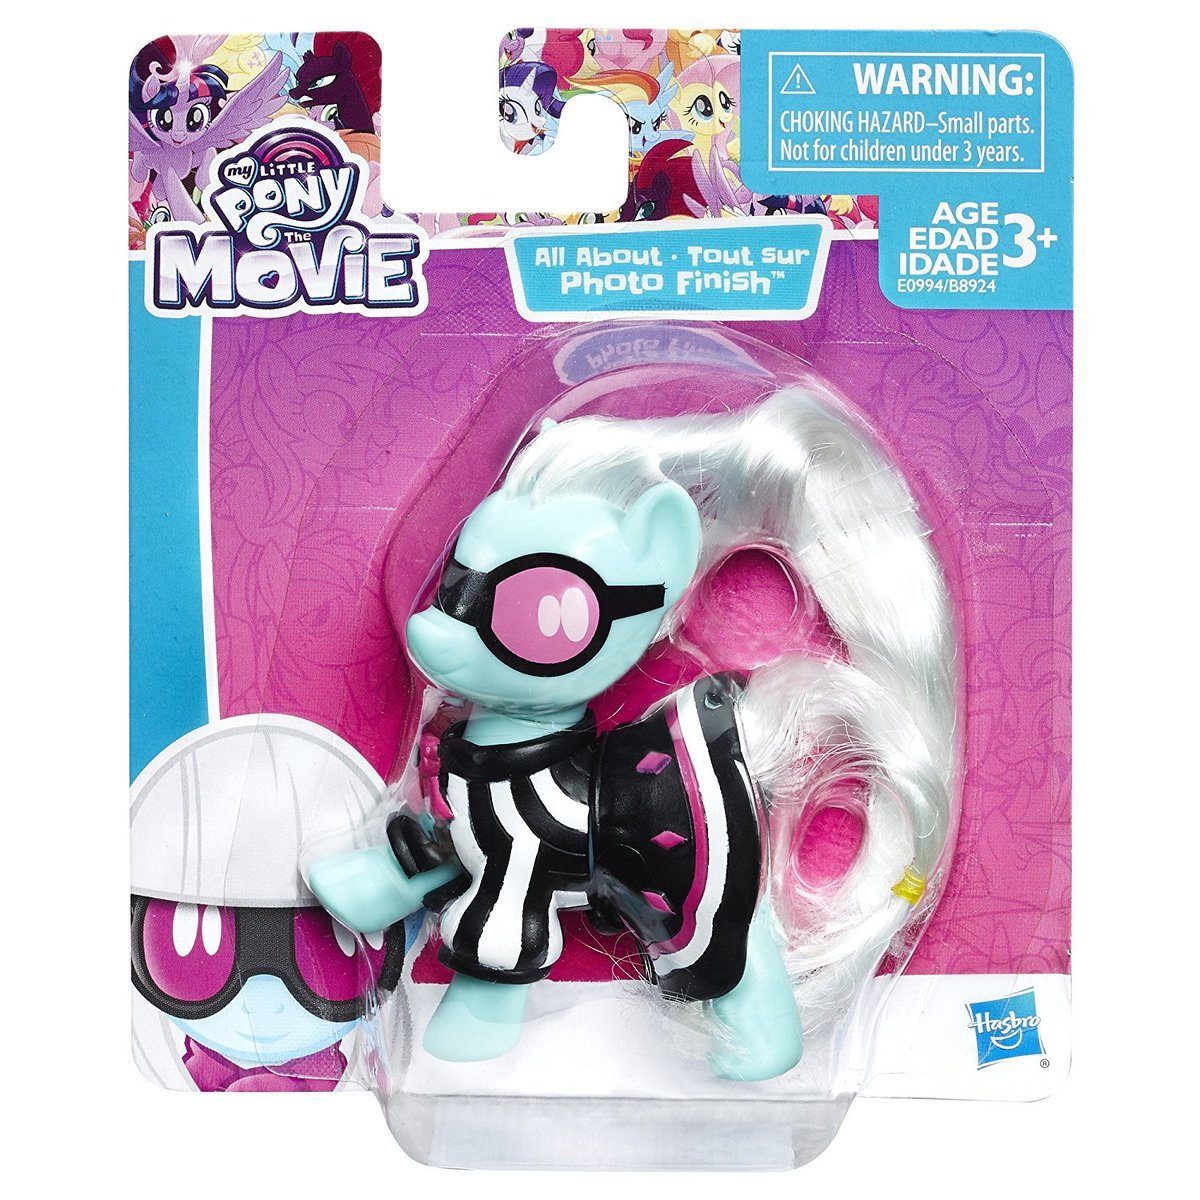 MY LITTLE PONY THE MOVIE ALL ABOUT TOUT SUR